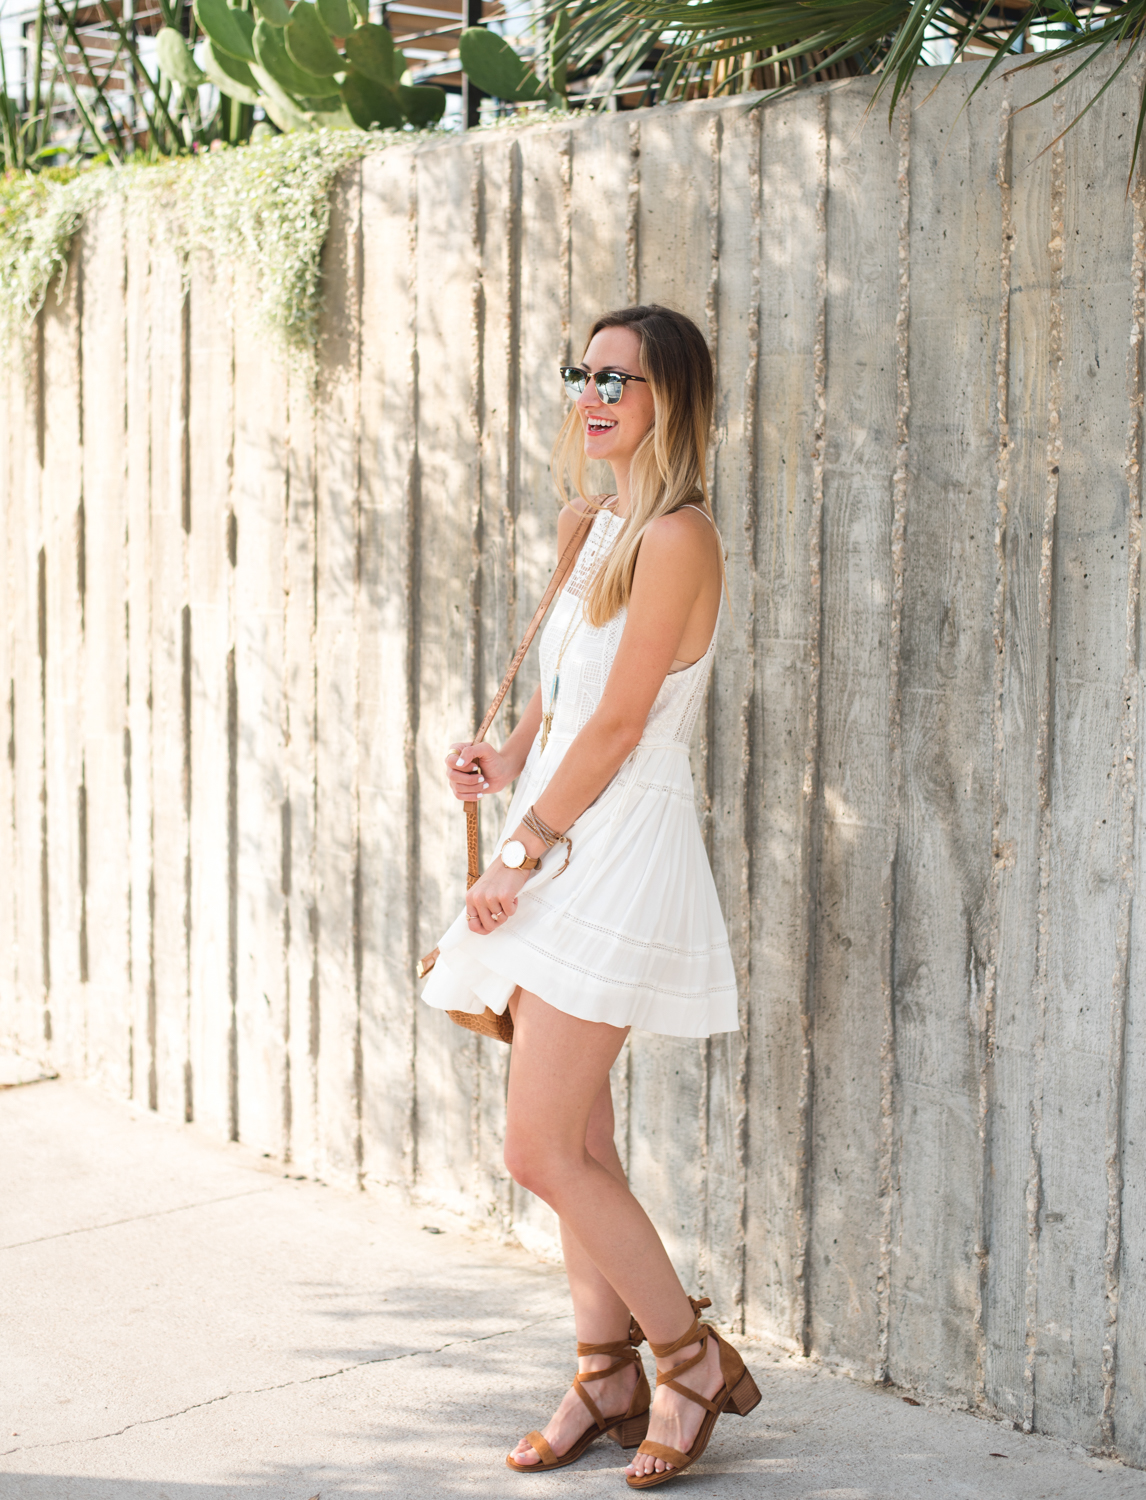 livvyland-blog-olivia-watson-austin-texas-fashion-blogger-free-people-flowy-white-high-neck-crochet-dress-tassel-south-lamar-kathryn-frazer-photography-boho-festival-outfit-8